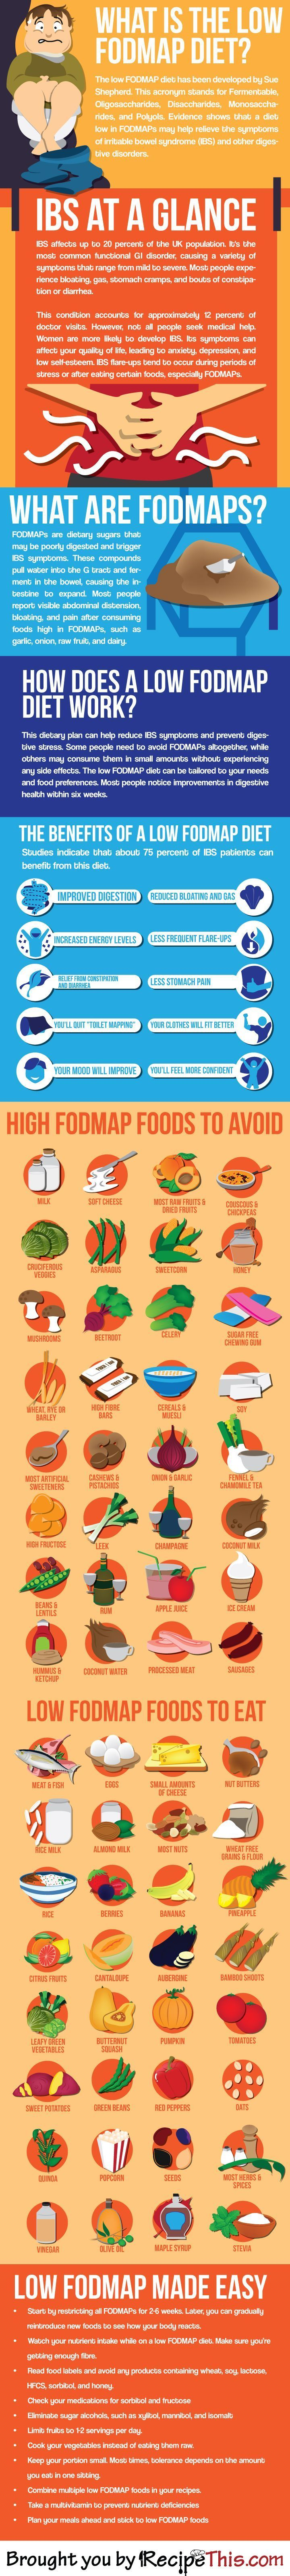 What Is The Low FODMap Diet Inforaphic from RecipeThis.com